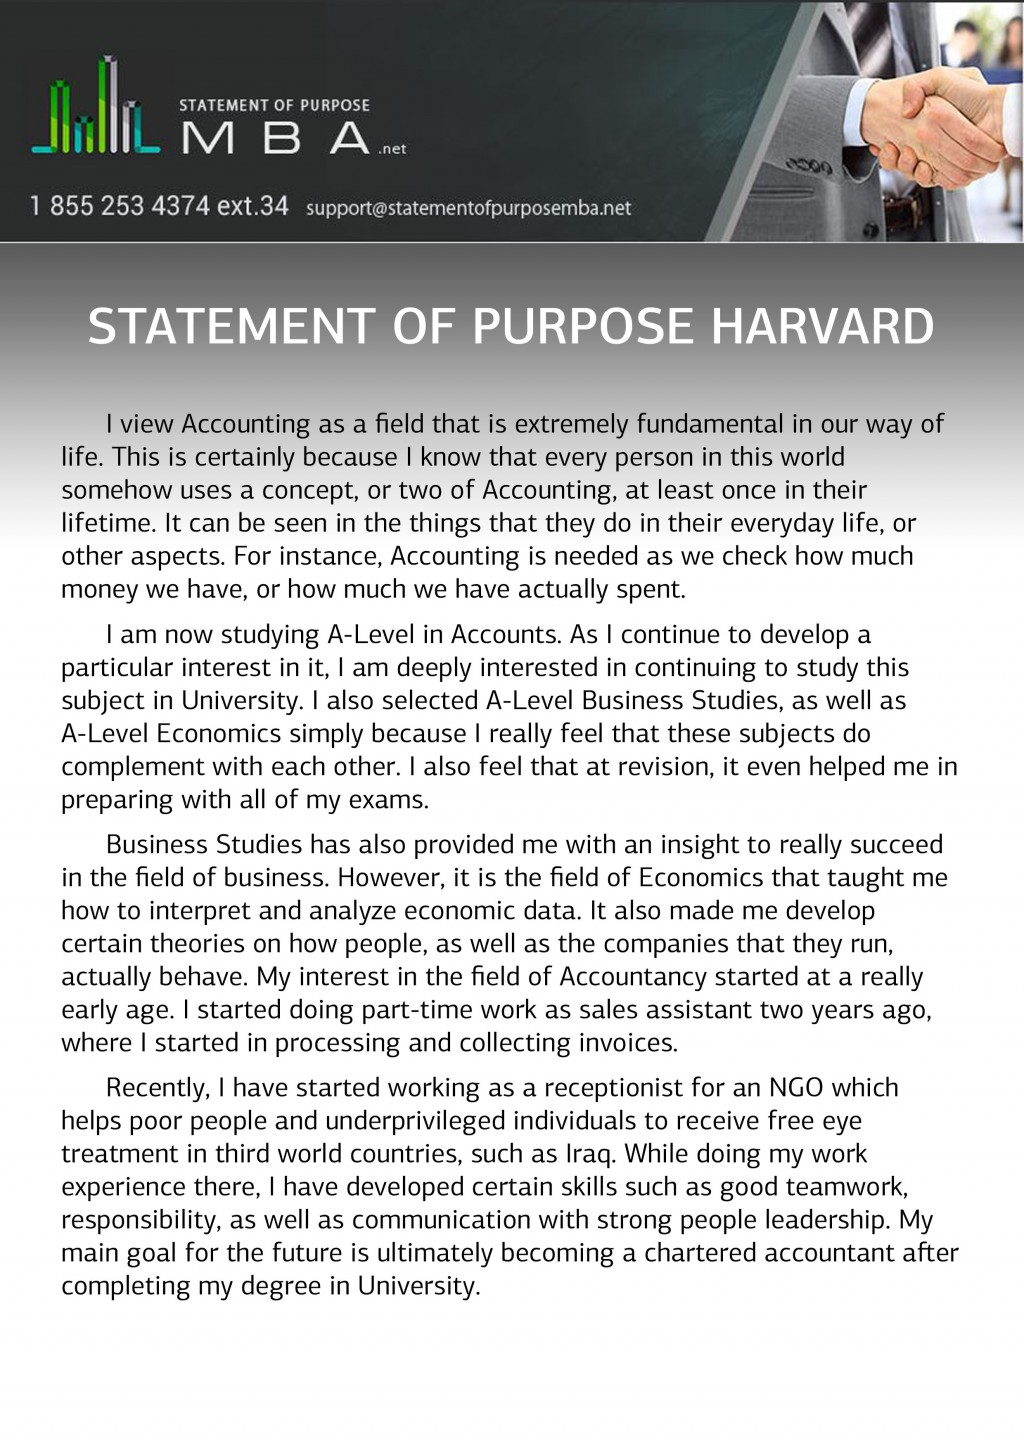 002 Stanford Mba Essay Sample Harvard Business School Application Statement Of Pu Formats Columbia Essays Best Ie Phenomenal 2019 Analysis Tips Large